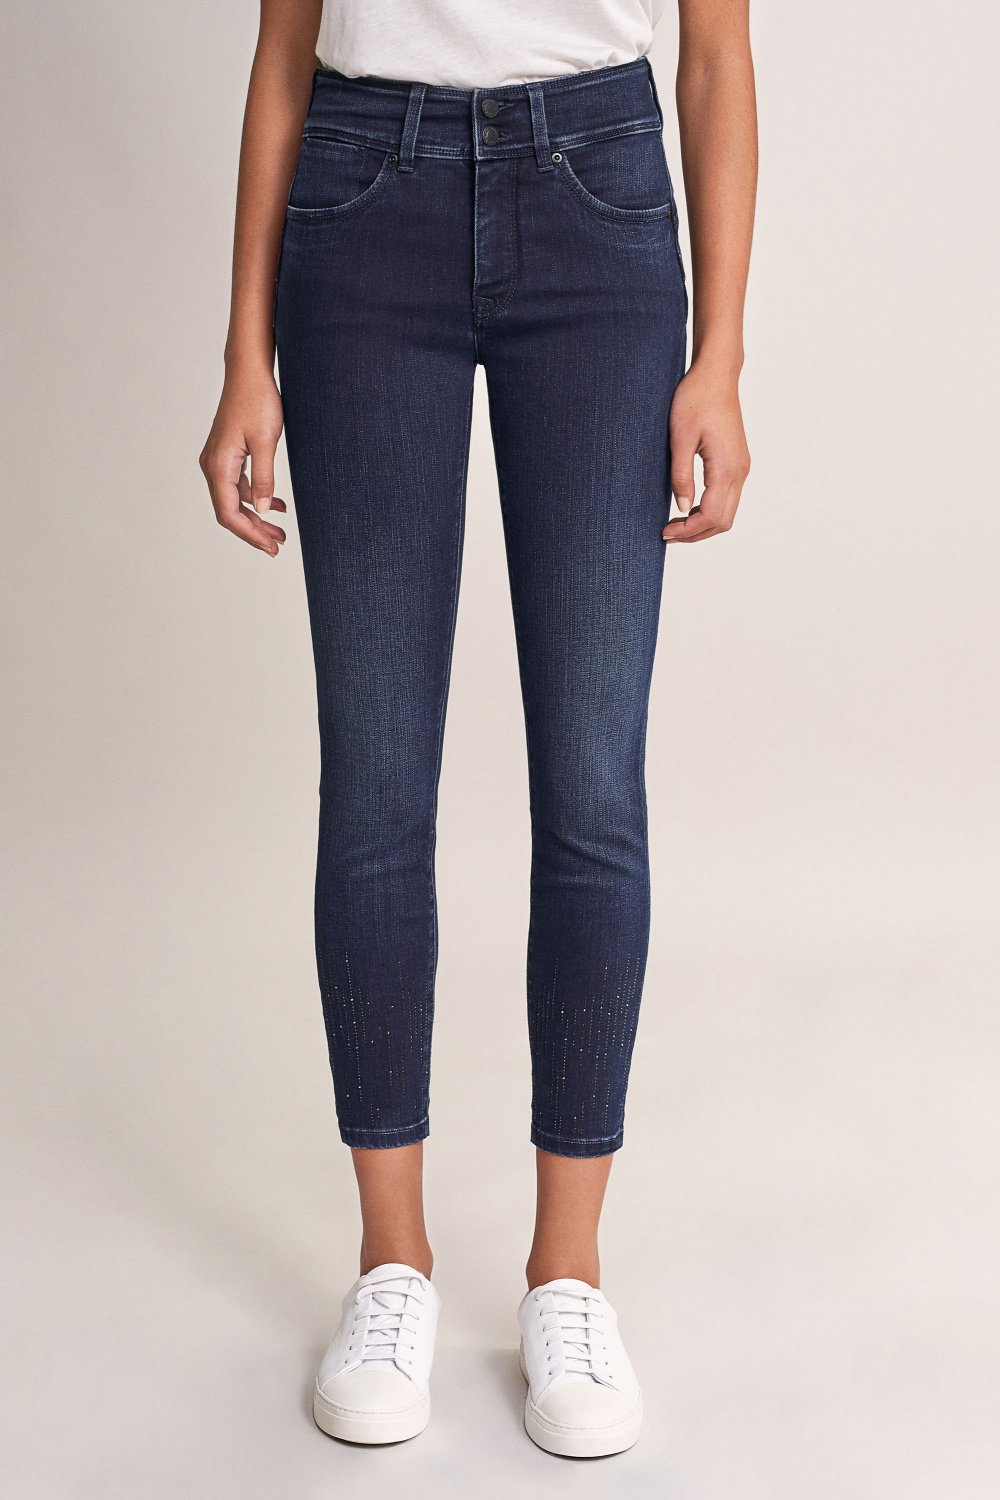 Push In Secret capri jeans with crystals on leg - Salsa